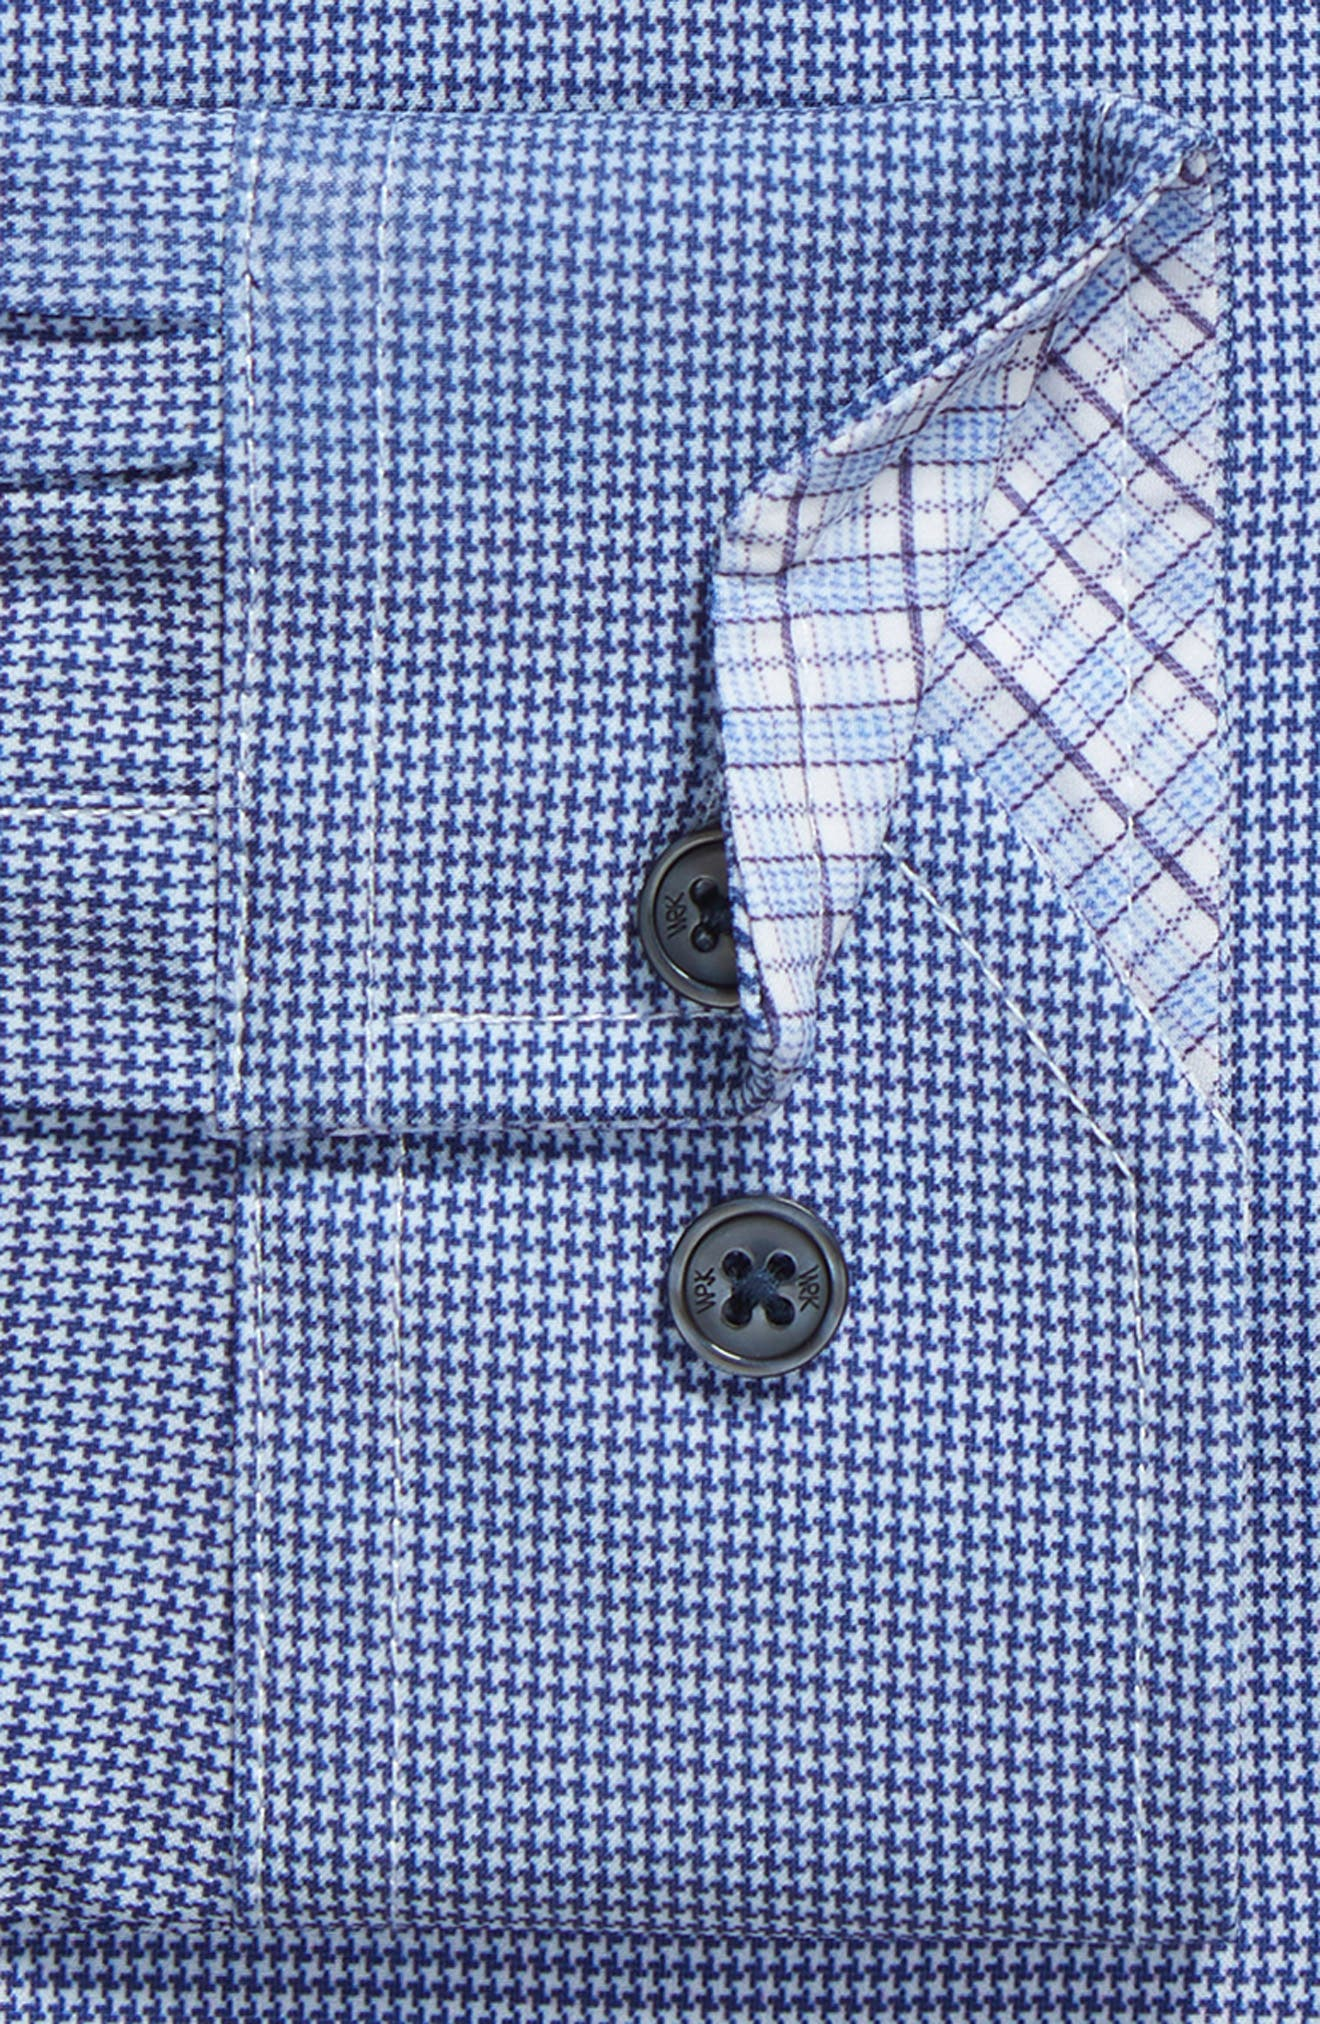 Trim Fit Houndstooth 4-Way Stretch Dress Shirt,                             Alternate thumbnail 6, color,                             NAVY